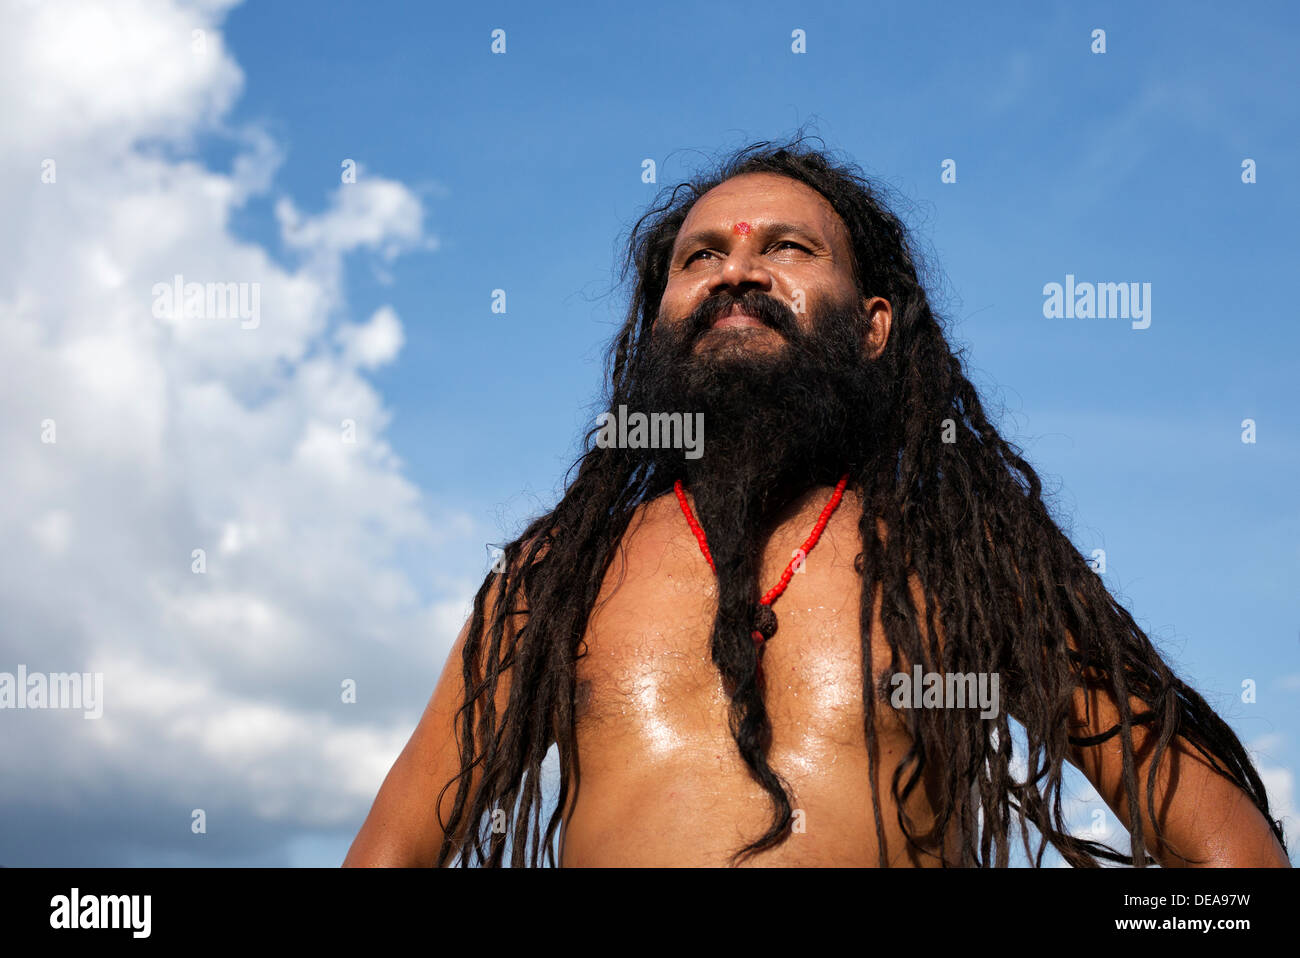 Indian Sadhu with dreadlocks against a blue cloudy sky. India - Stock Image